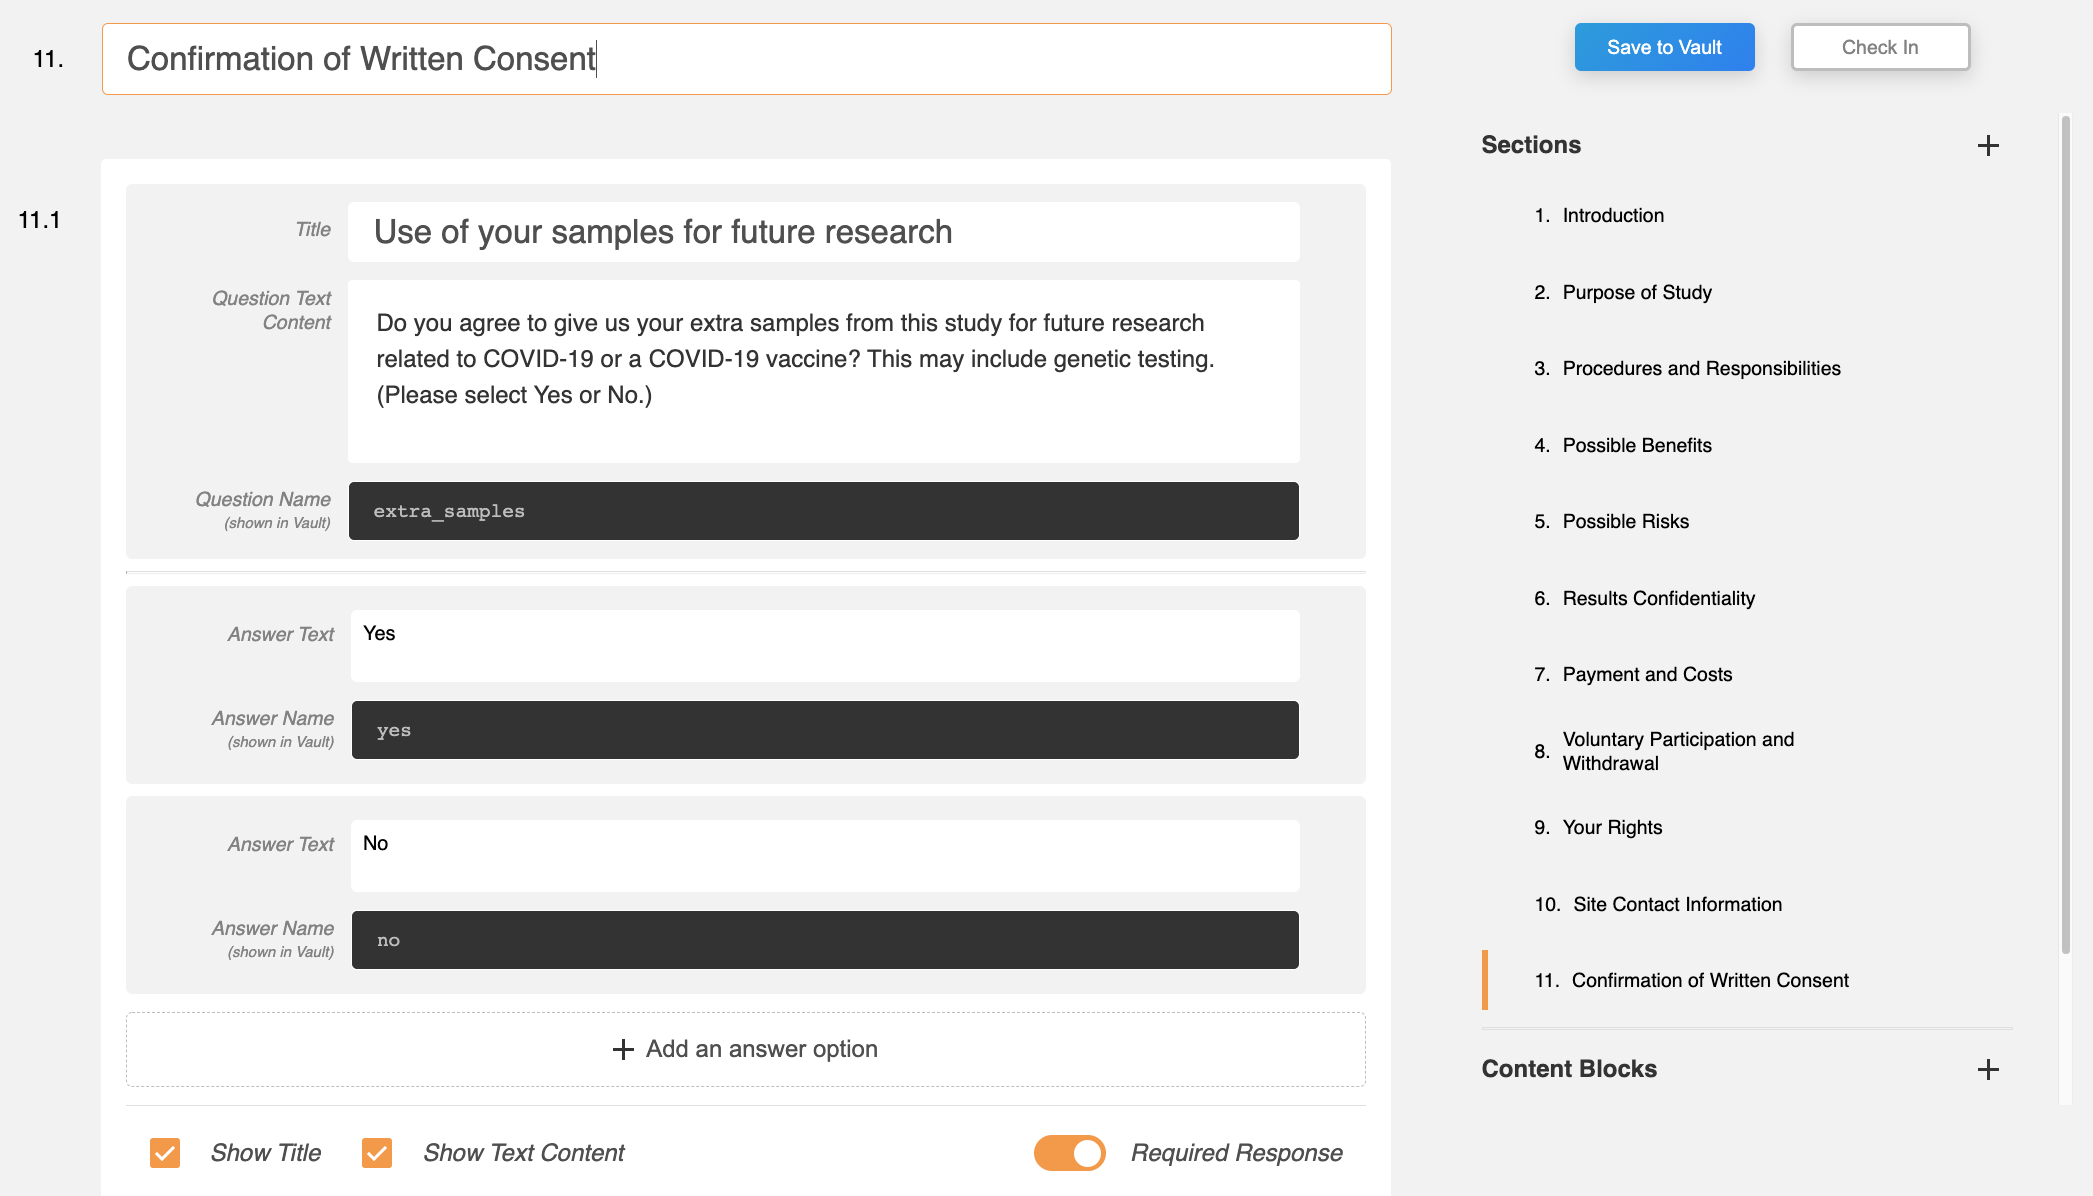 Additional response name and answer fields